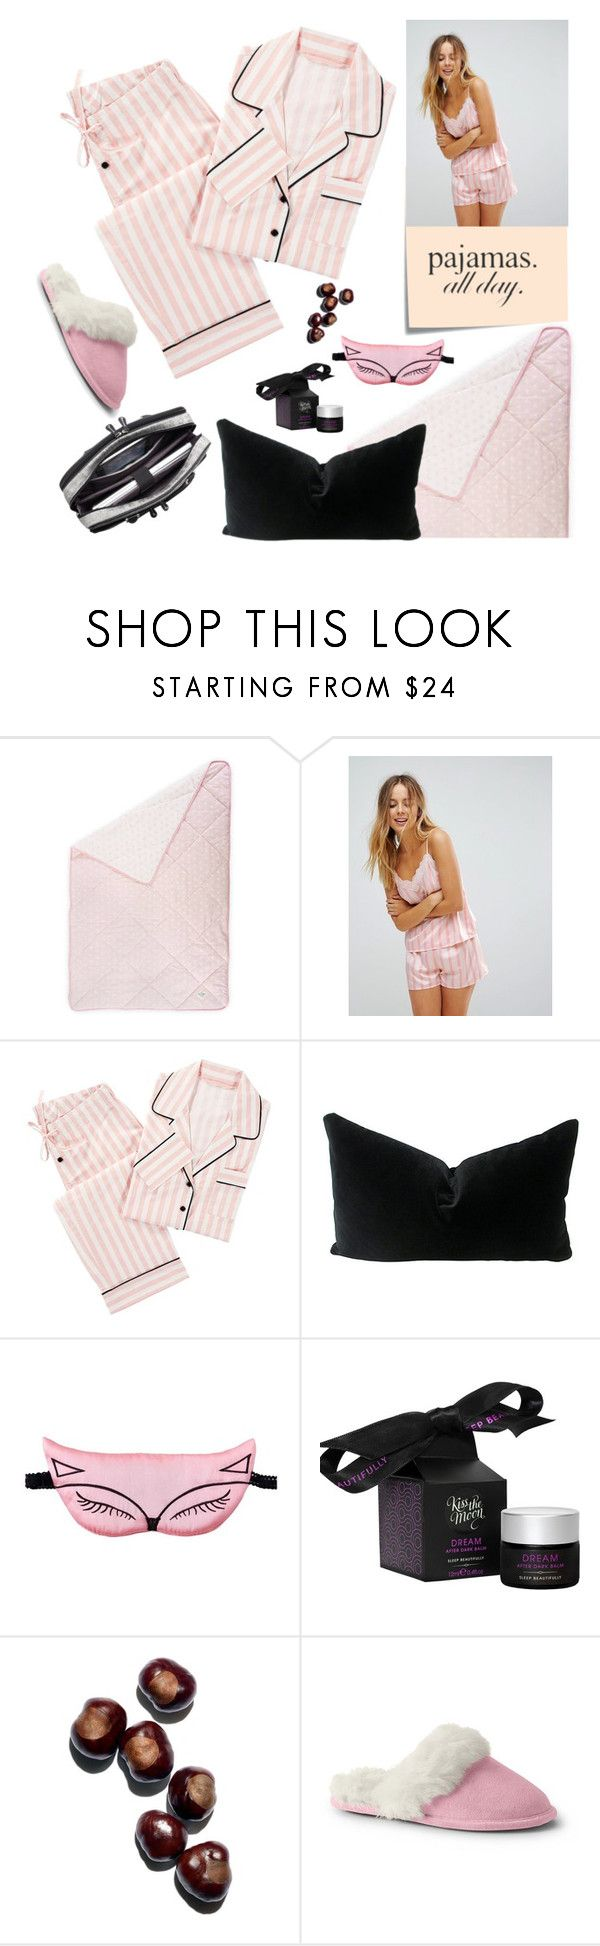 """""""Pajamas All Day"""" by manaaw ❤ liked on Polyvore featuring Post-It, Loungeable, PBteen, Kiss the Moon, Lands' End, Mobile Edge and LovelyLoungewear"""